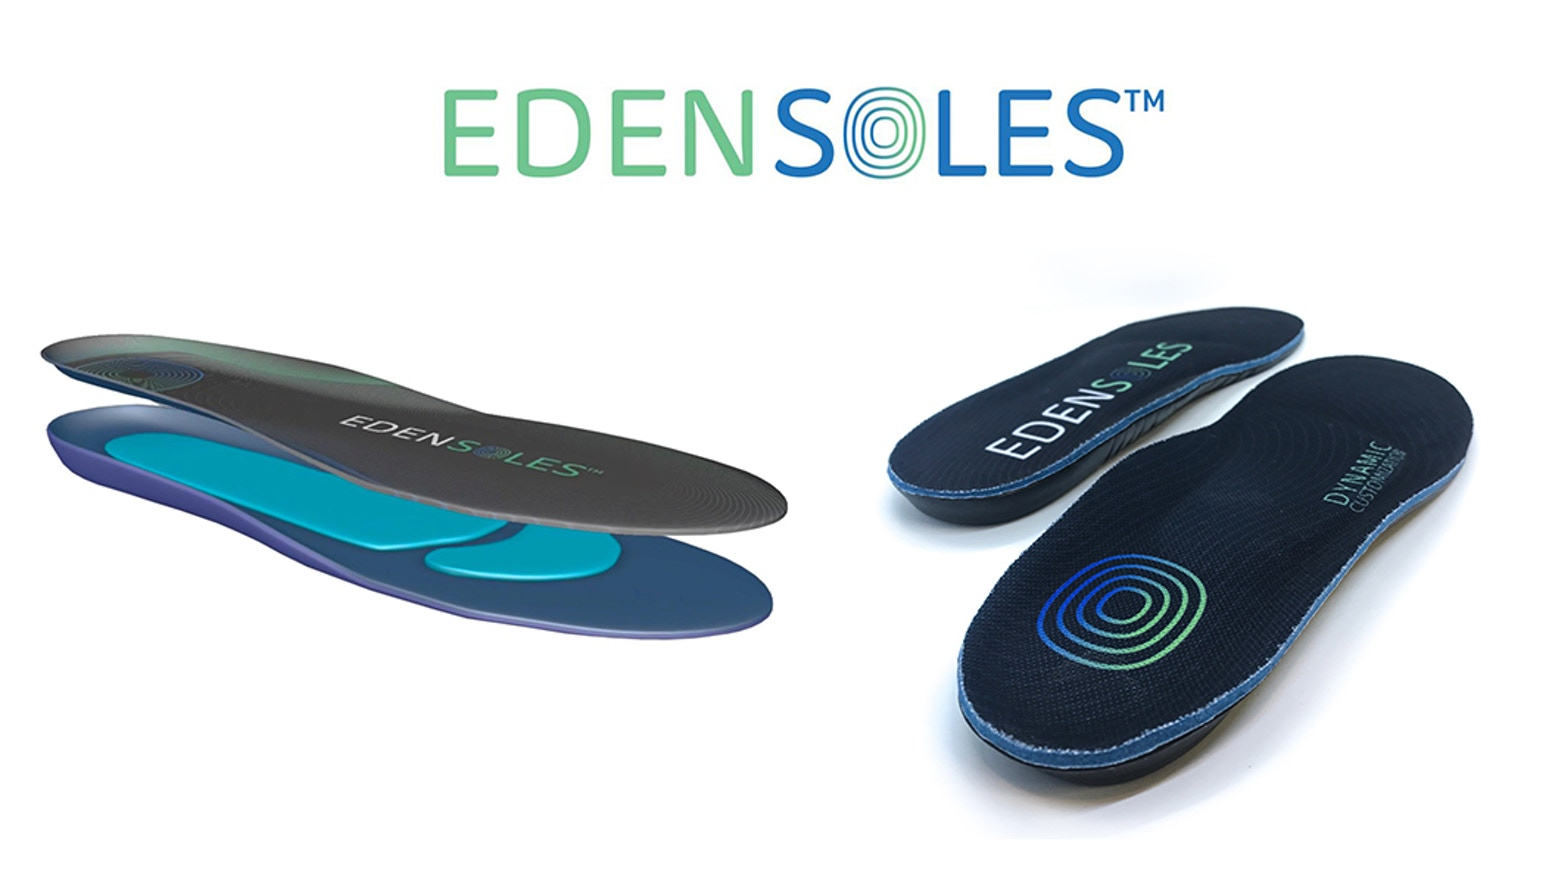 Edensoles | Sole To Soul Comfort with Dynamic Customization